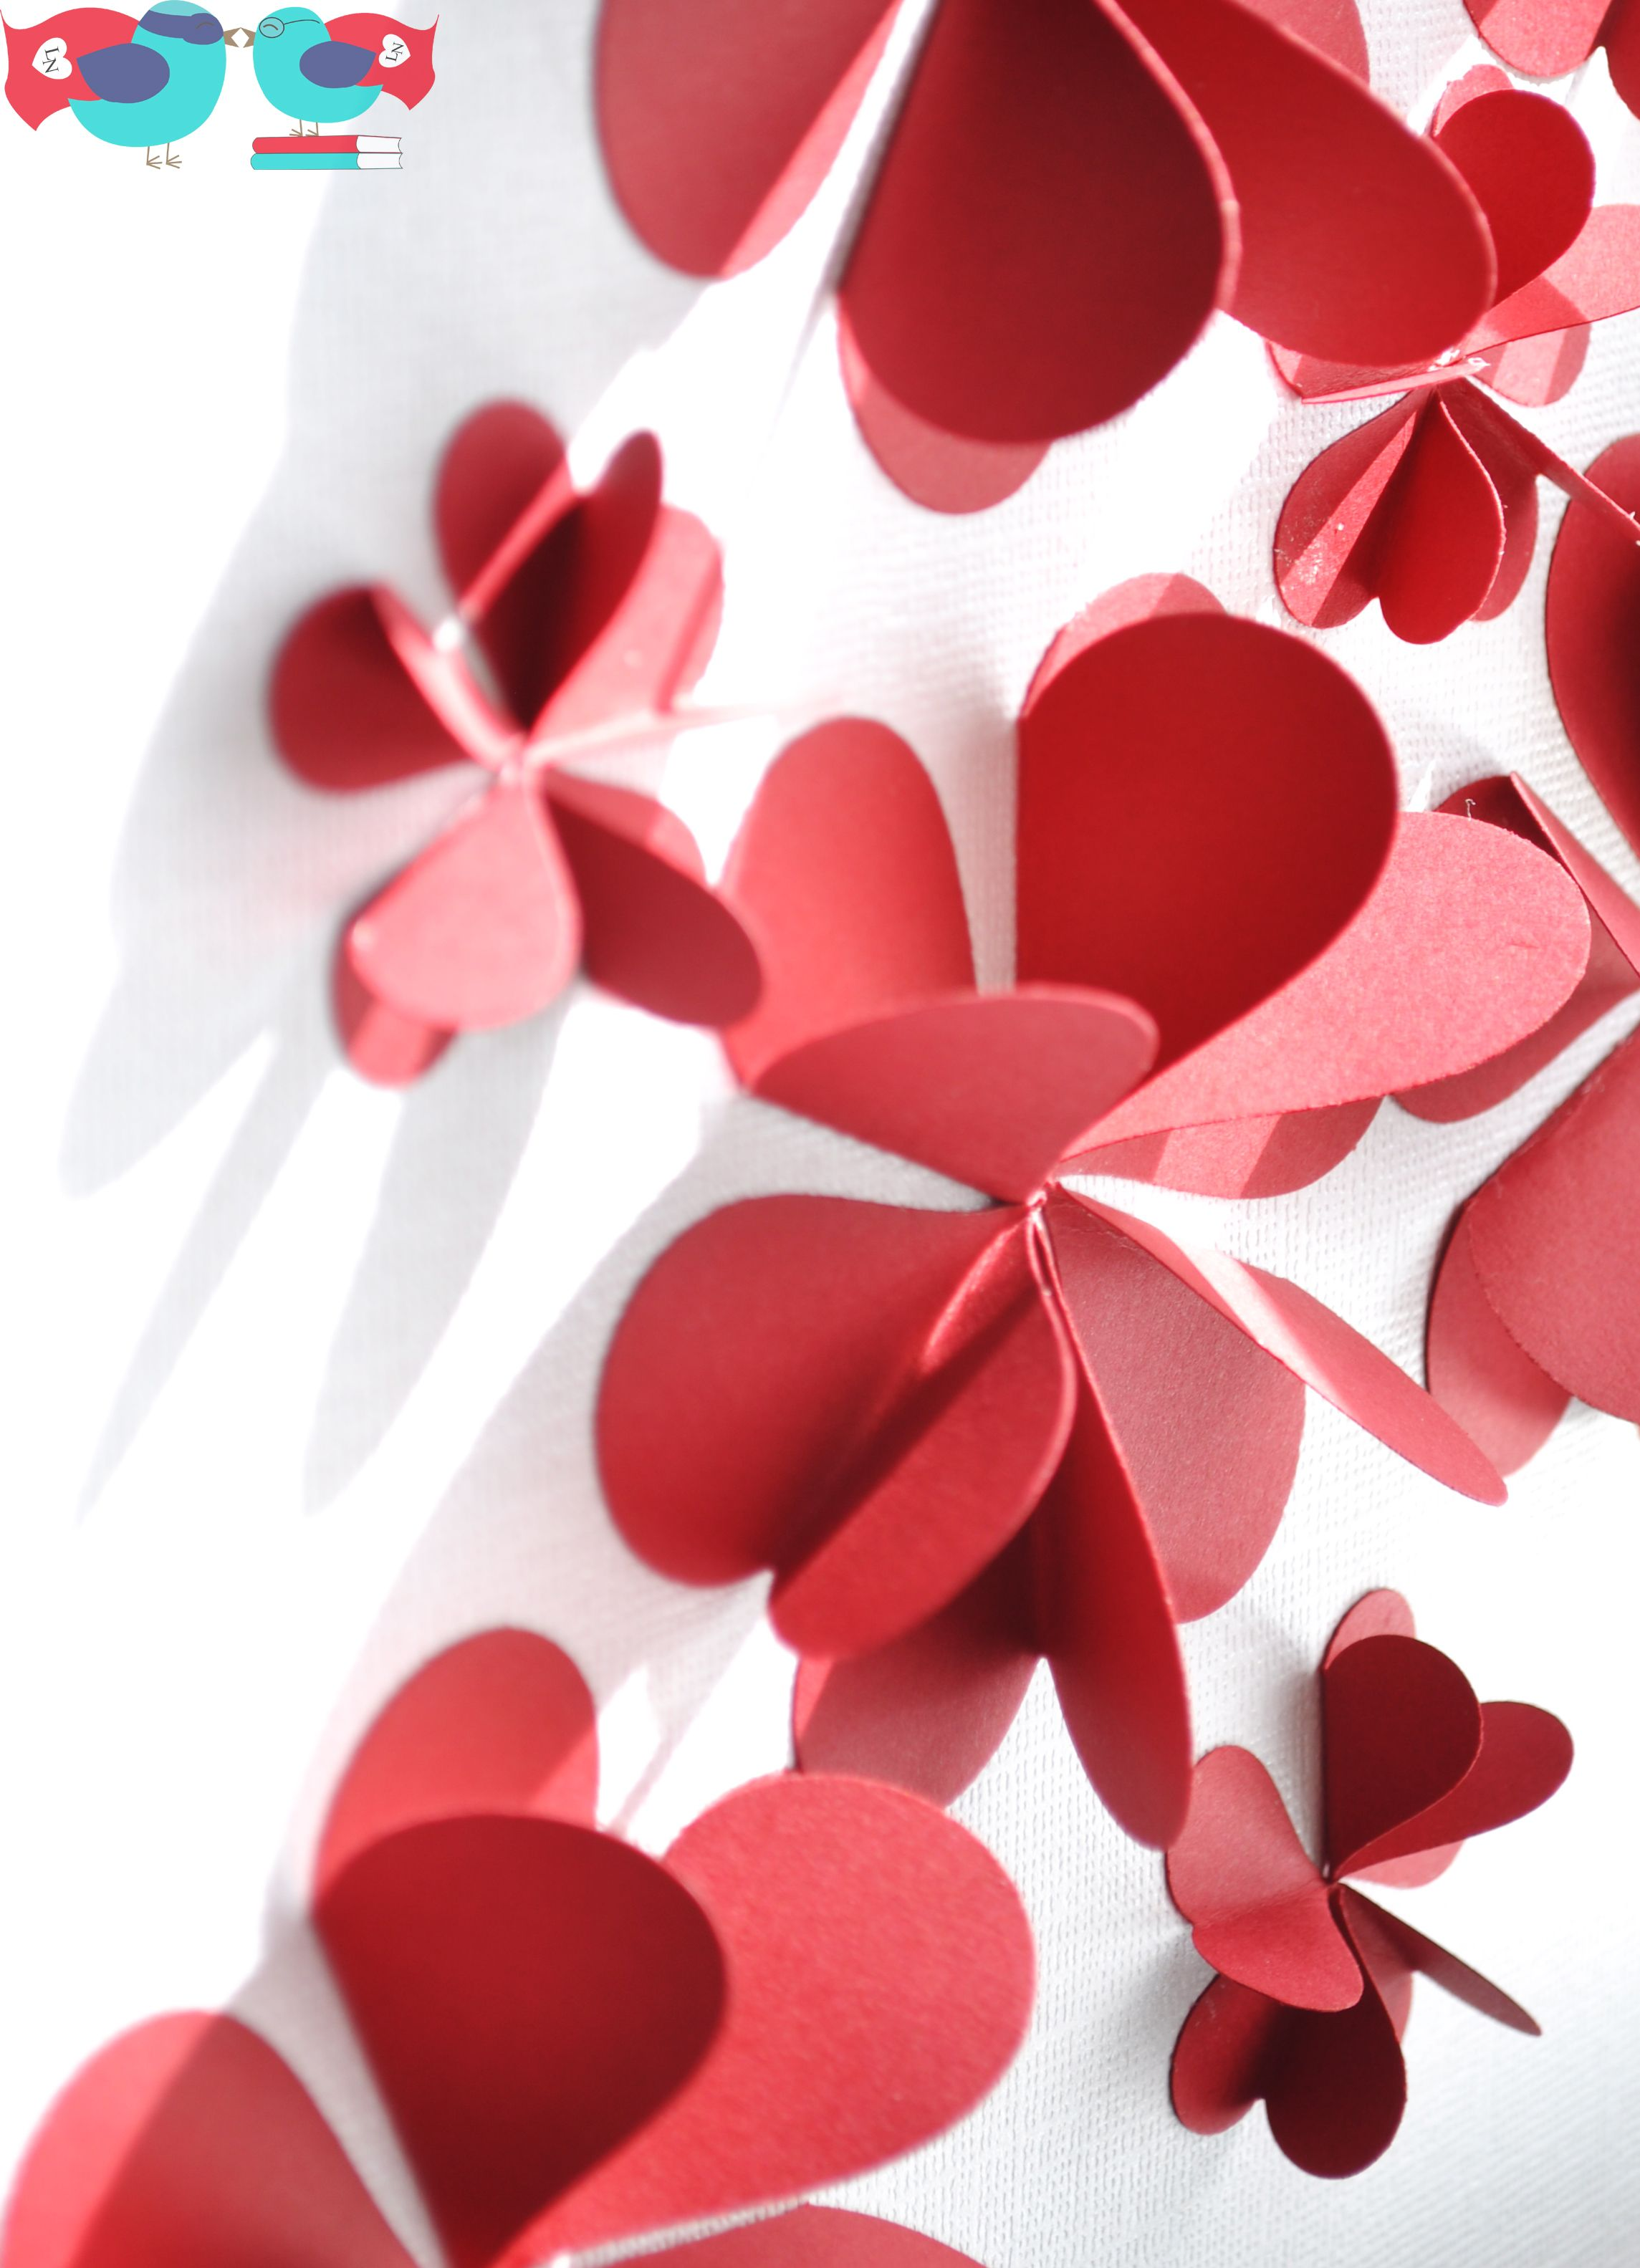 3d flower art using paper hearts 3d paper flower art for Diy 3d art